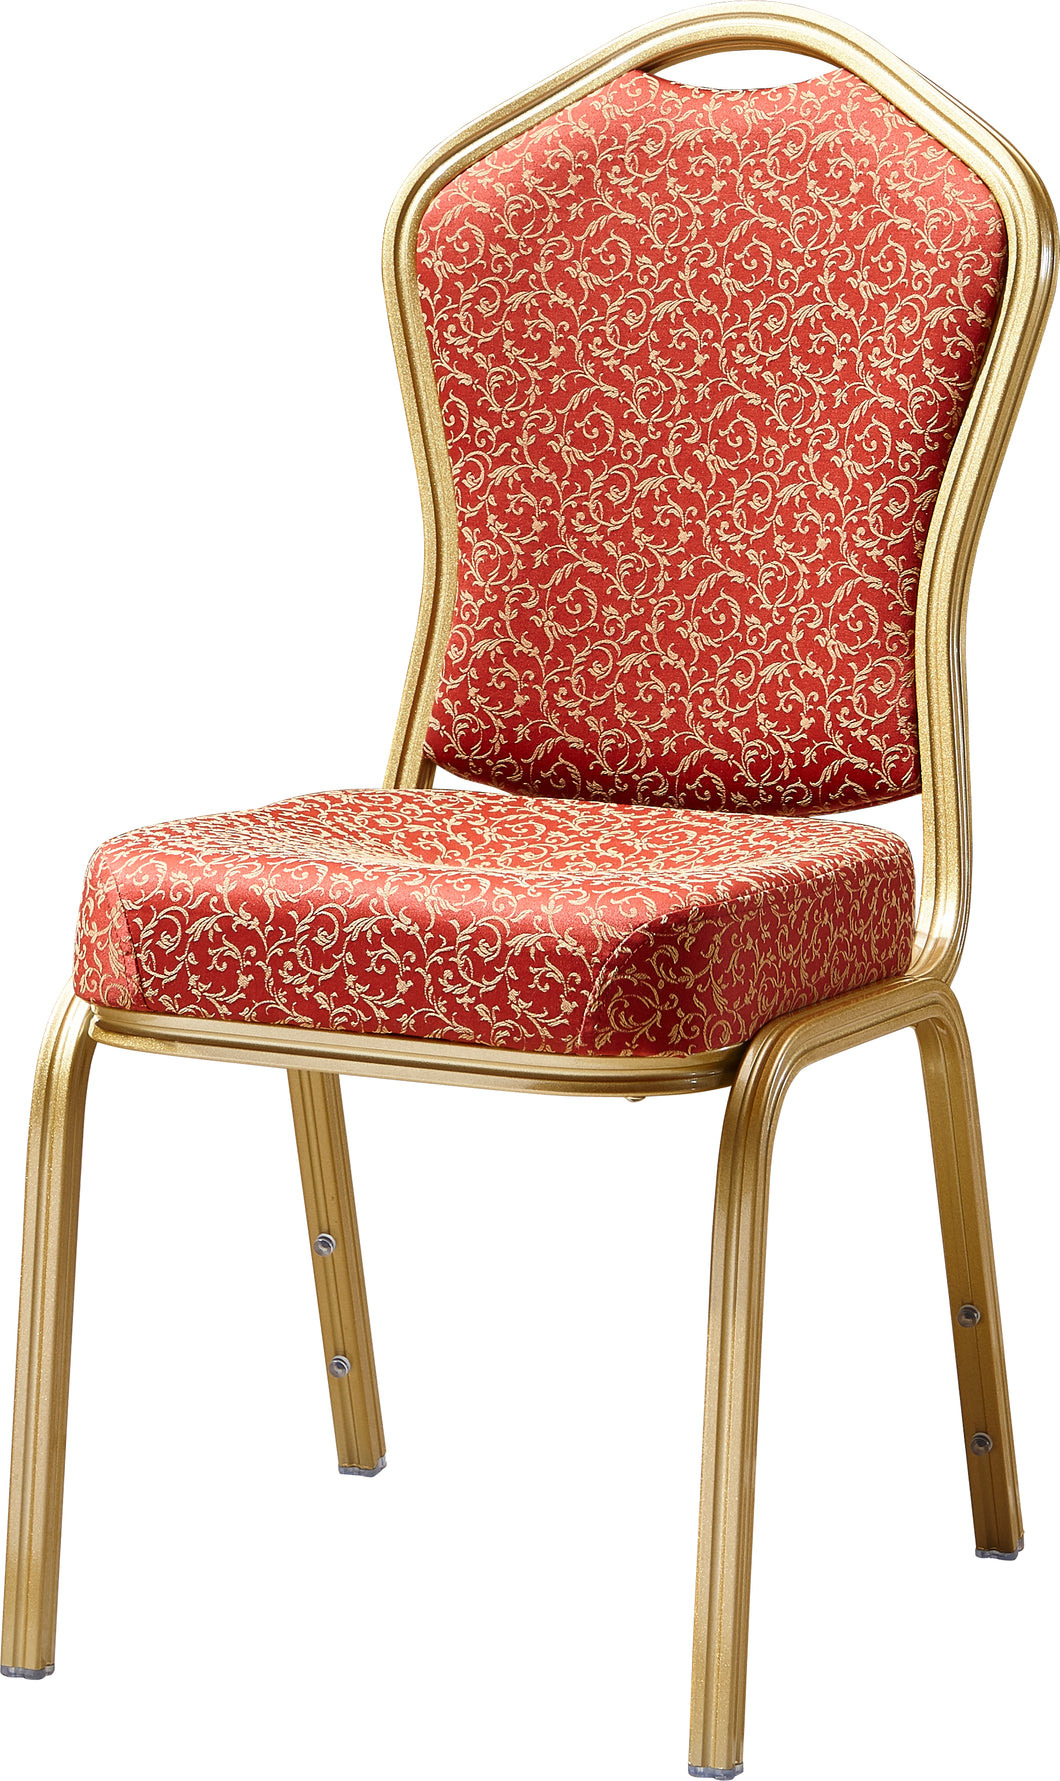 Winport Crown Back Banquet/Dinning Chair SA-1037-Red